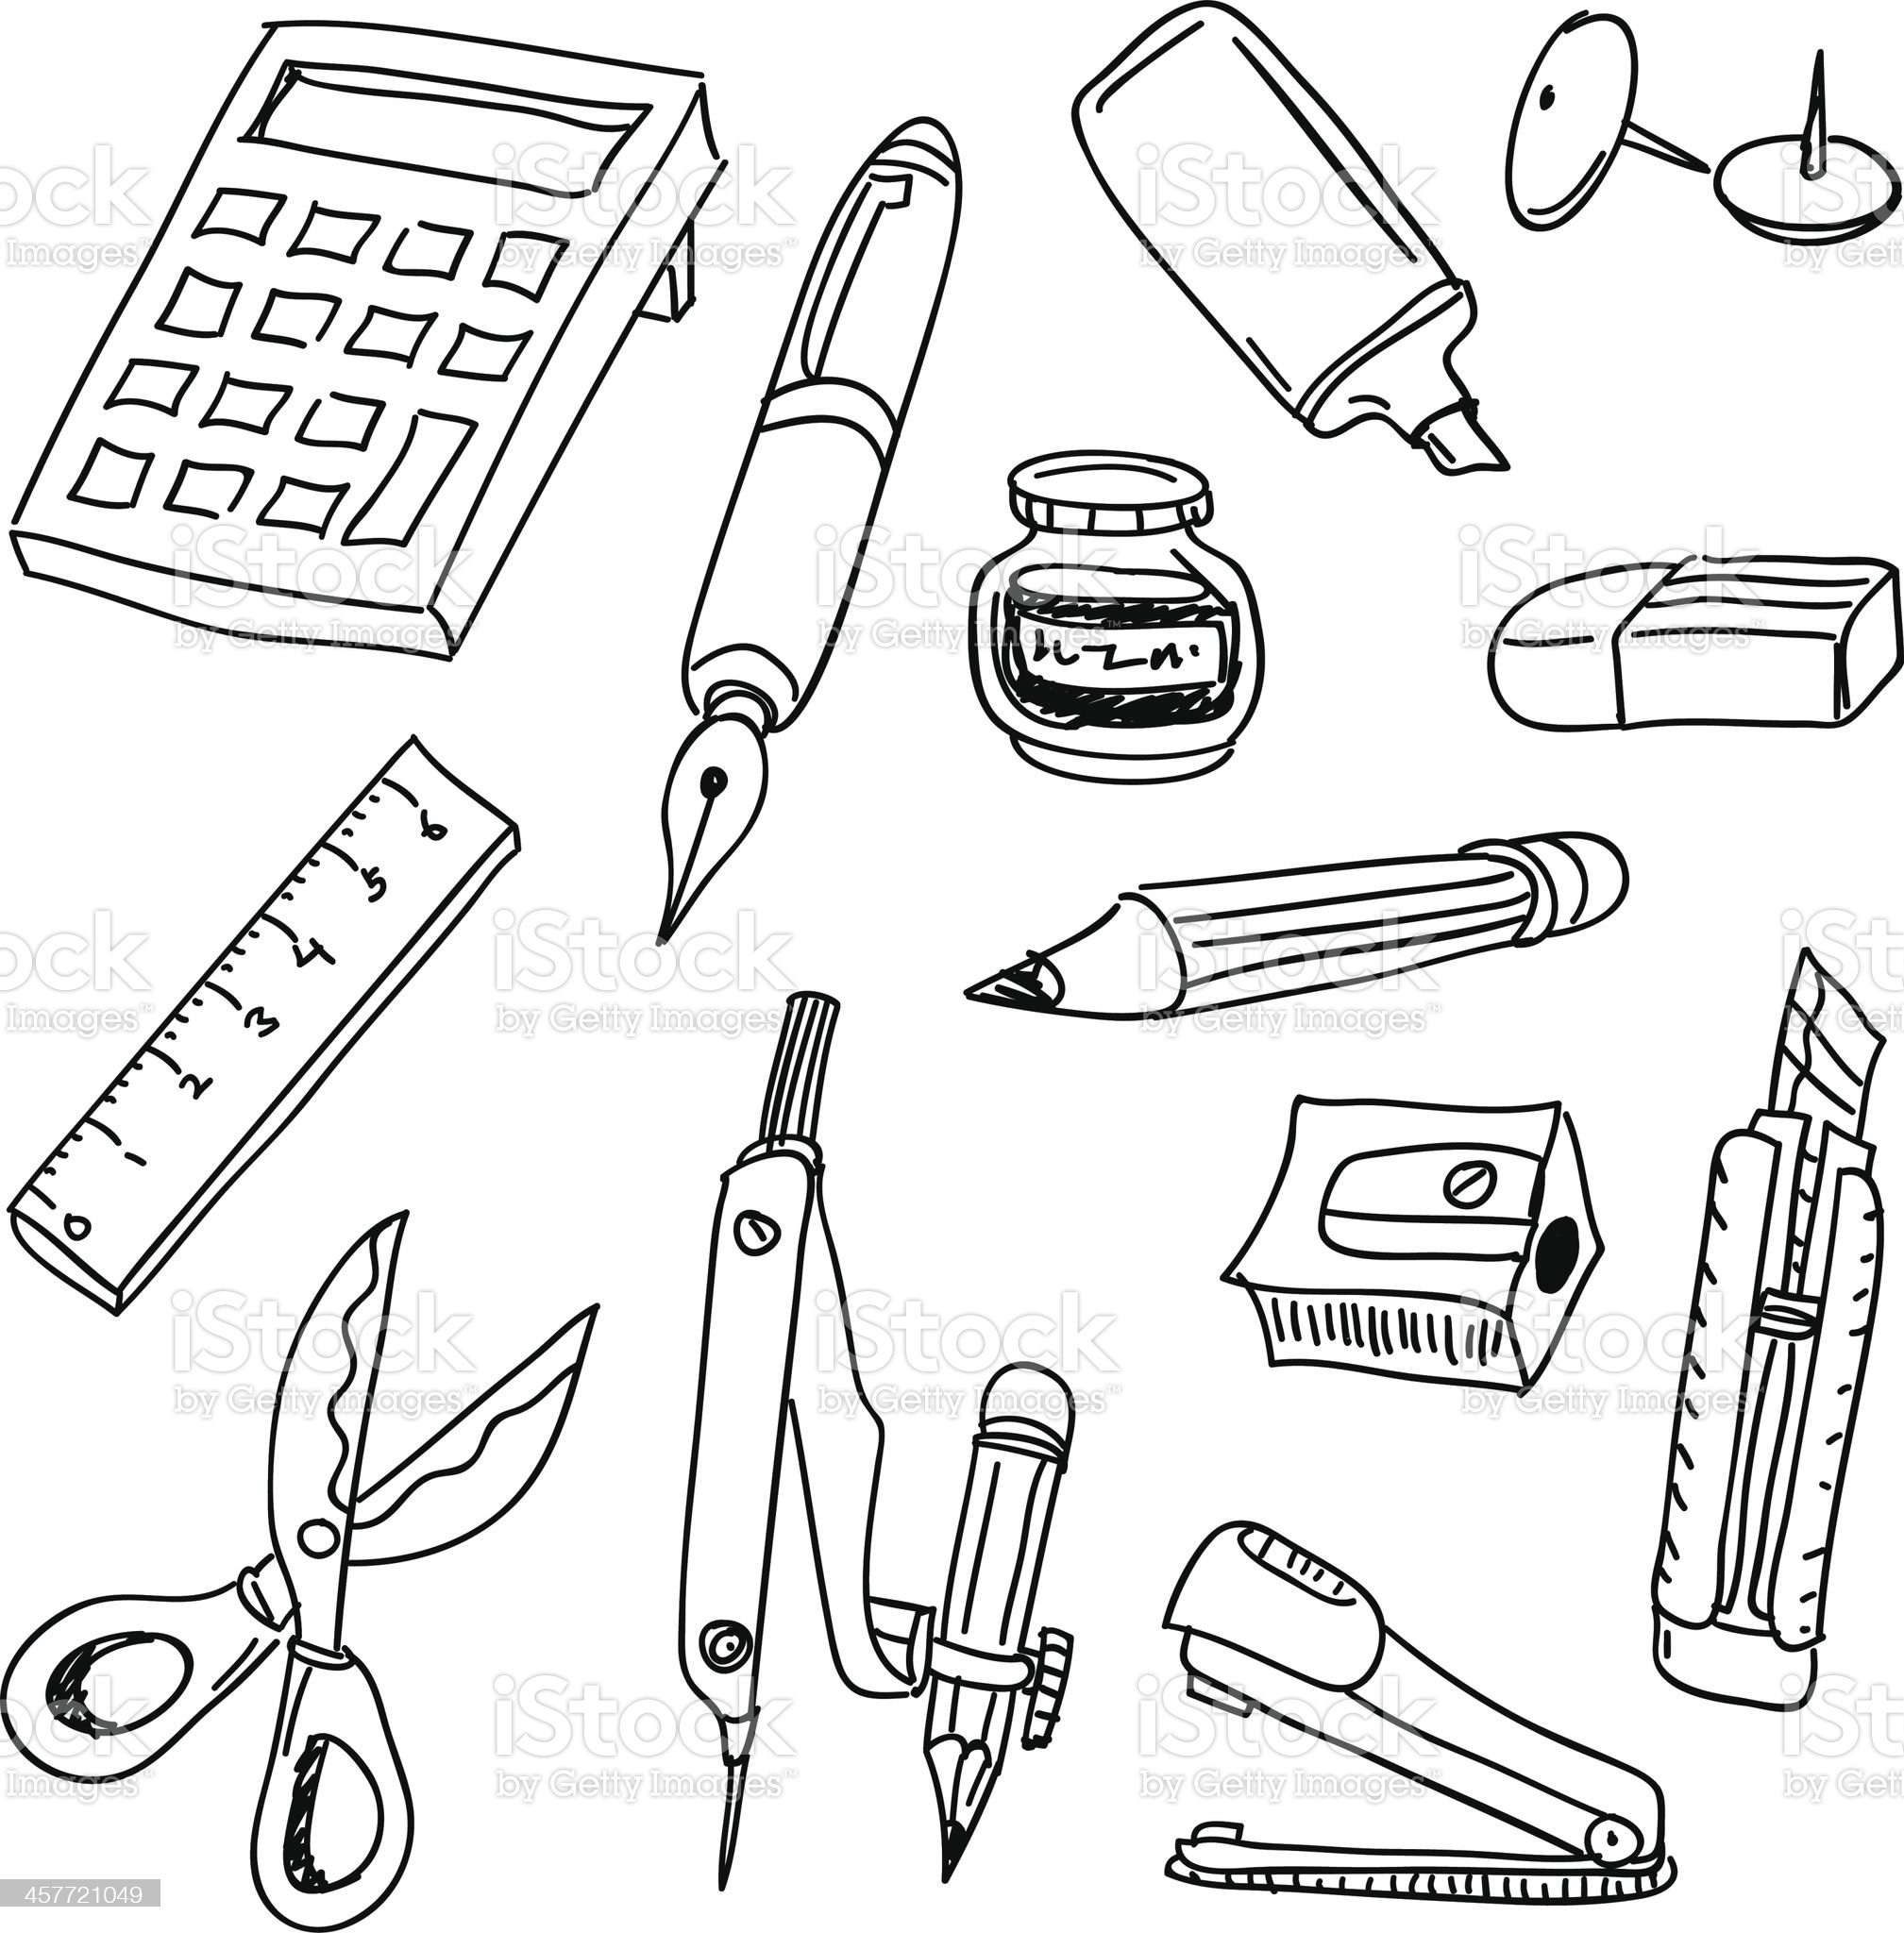 Stationery collection in black and white royalty-free stock vector art